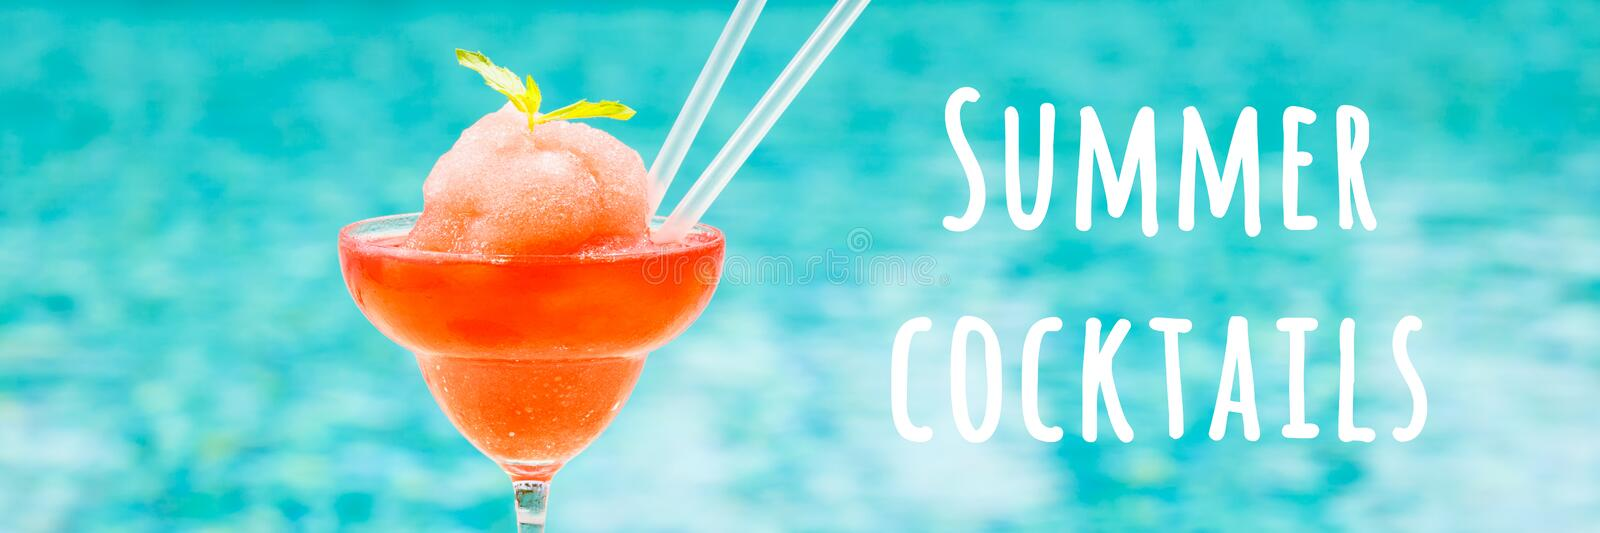 Frozen strawberry margarita cocktail at the edge of a resort pool. Concept of luxury vacation. Summer cocktails wording. Frozen strawberry margarita cocktail at stock images